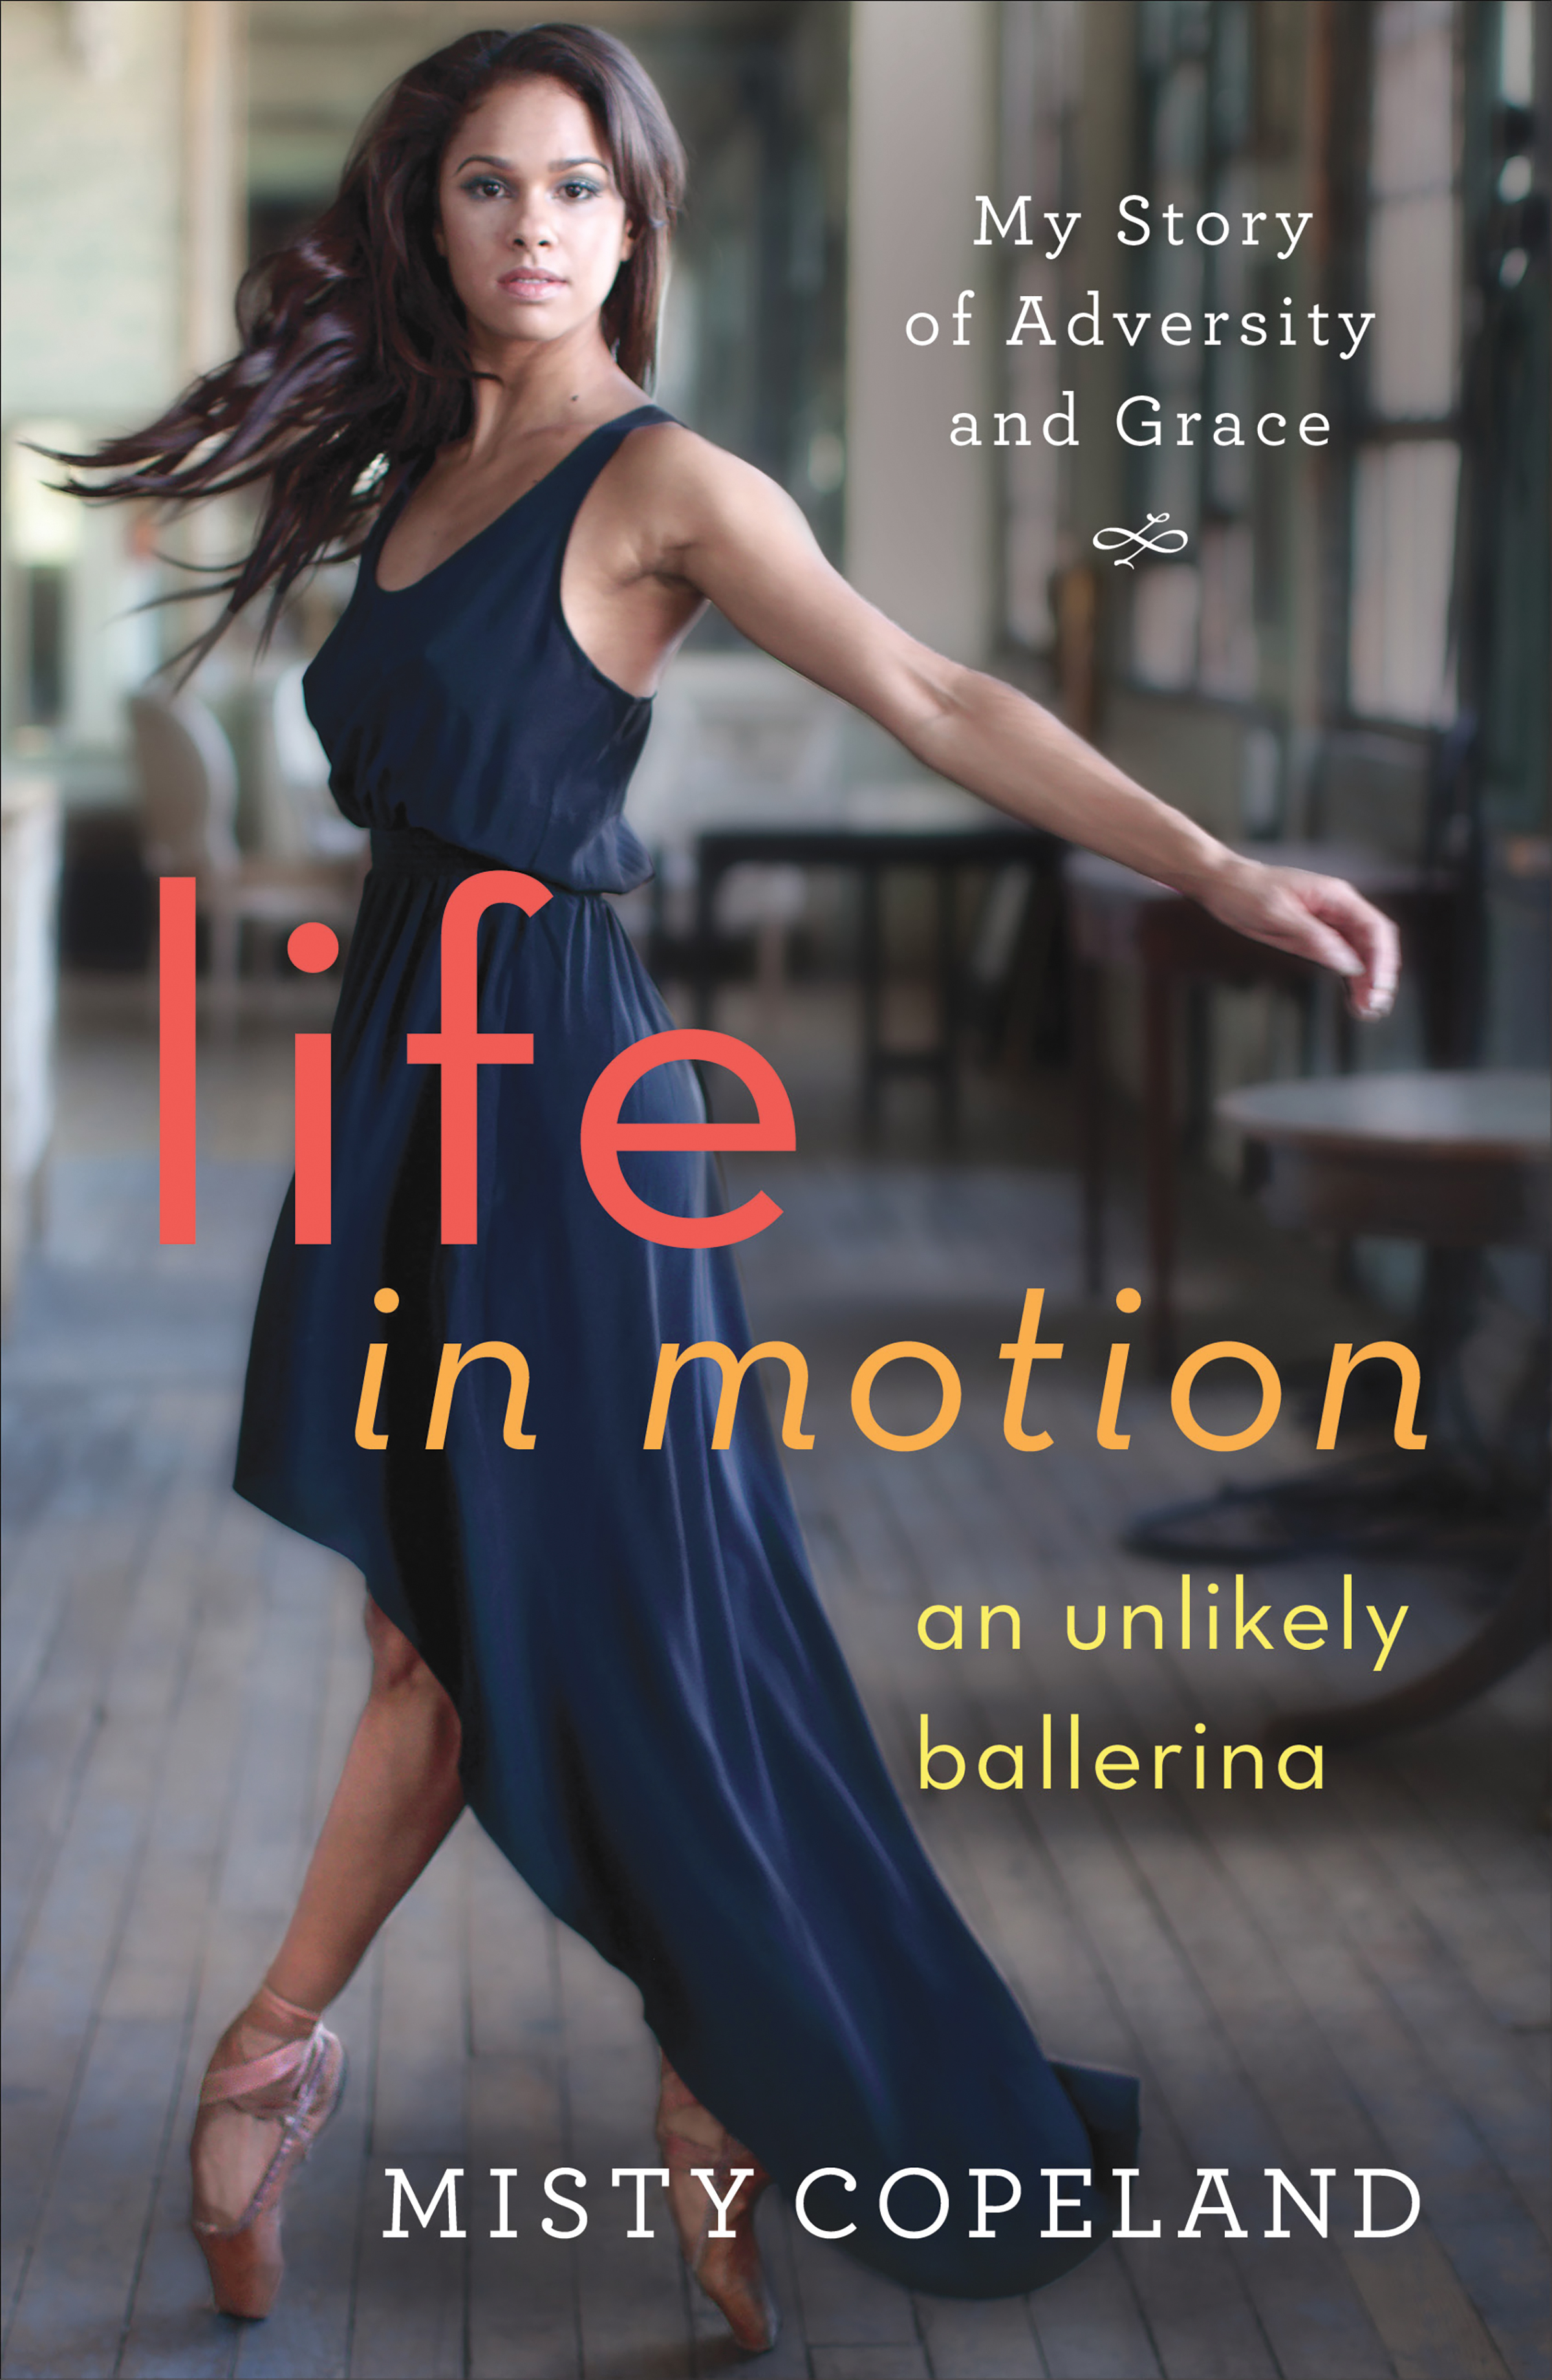 Book Cover for Life In Motion memoir. / Wikimedia Commons